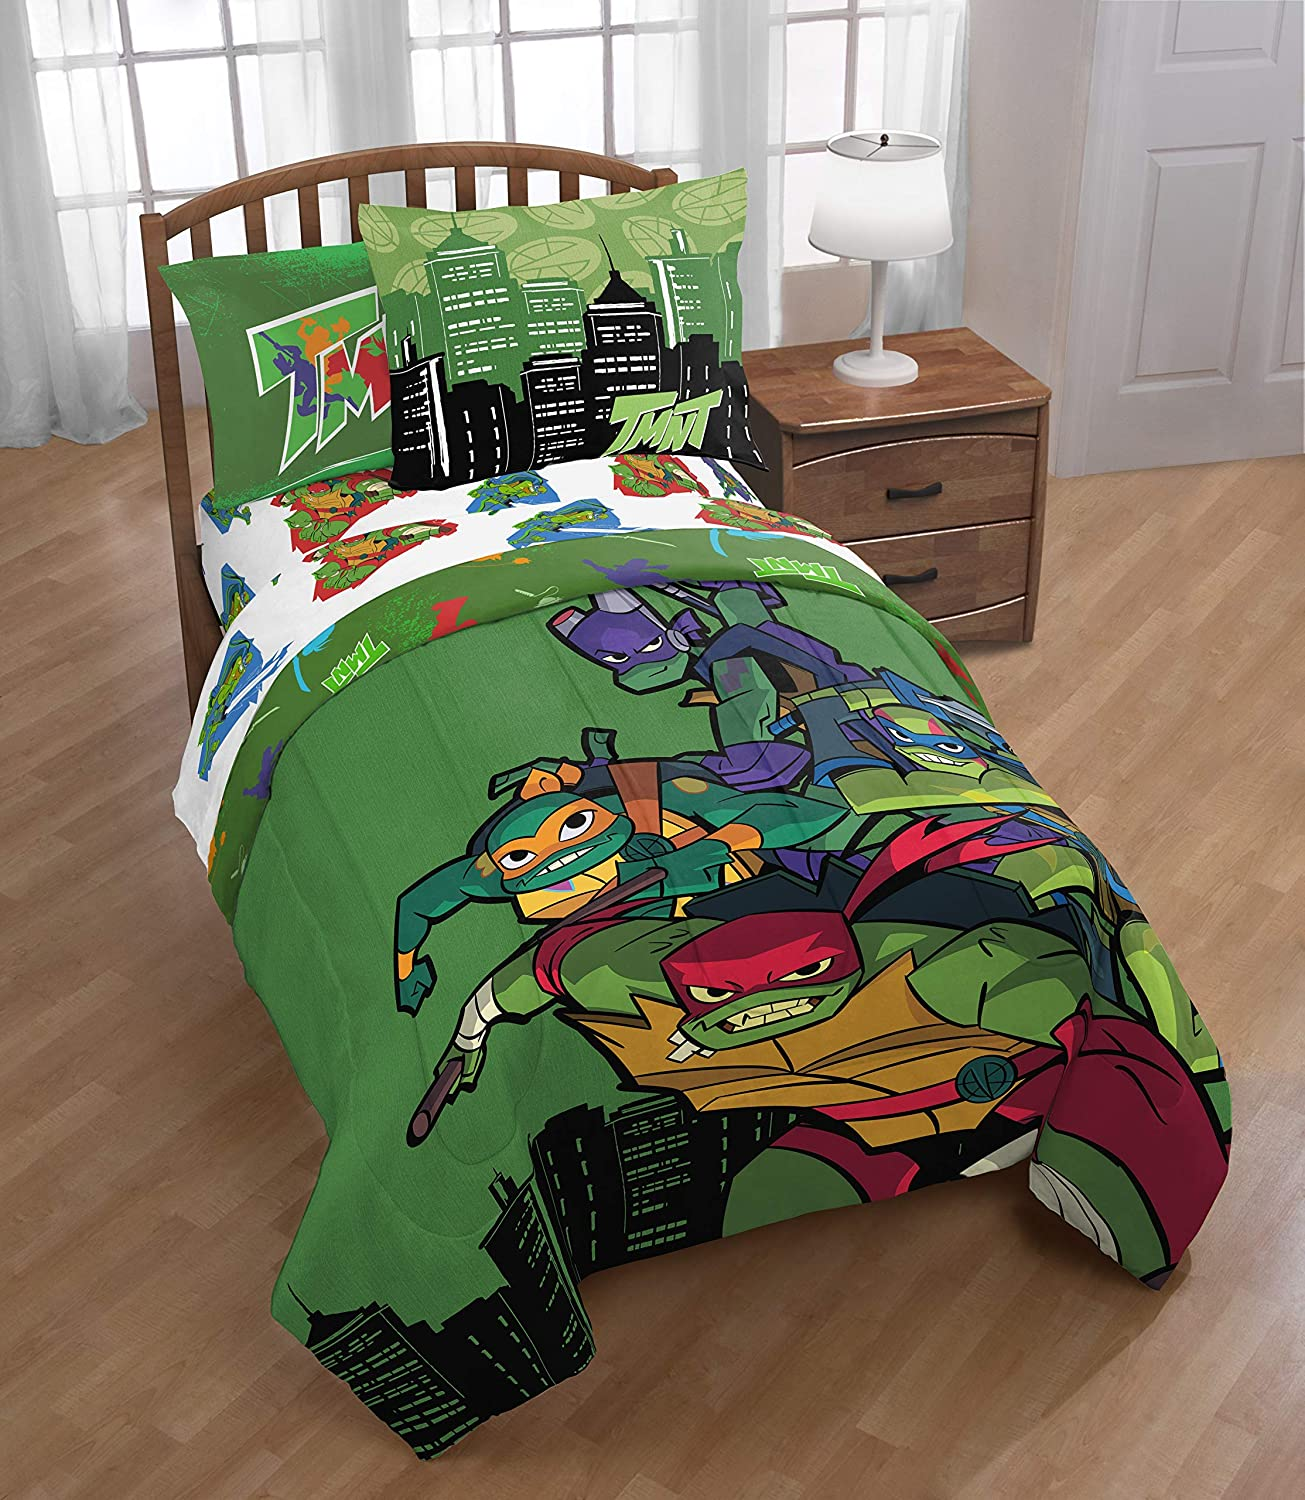 Teenage Mutant Ninja Turtles Full Comforter, Sheet Set, Bonus SHAM (6 Piece Bedding) + Bonus Wooden Figure Set